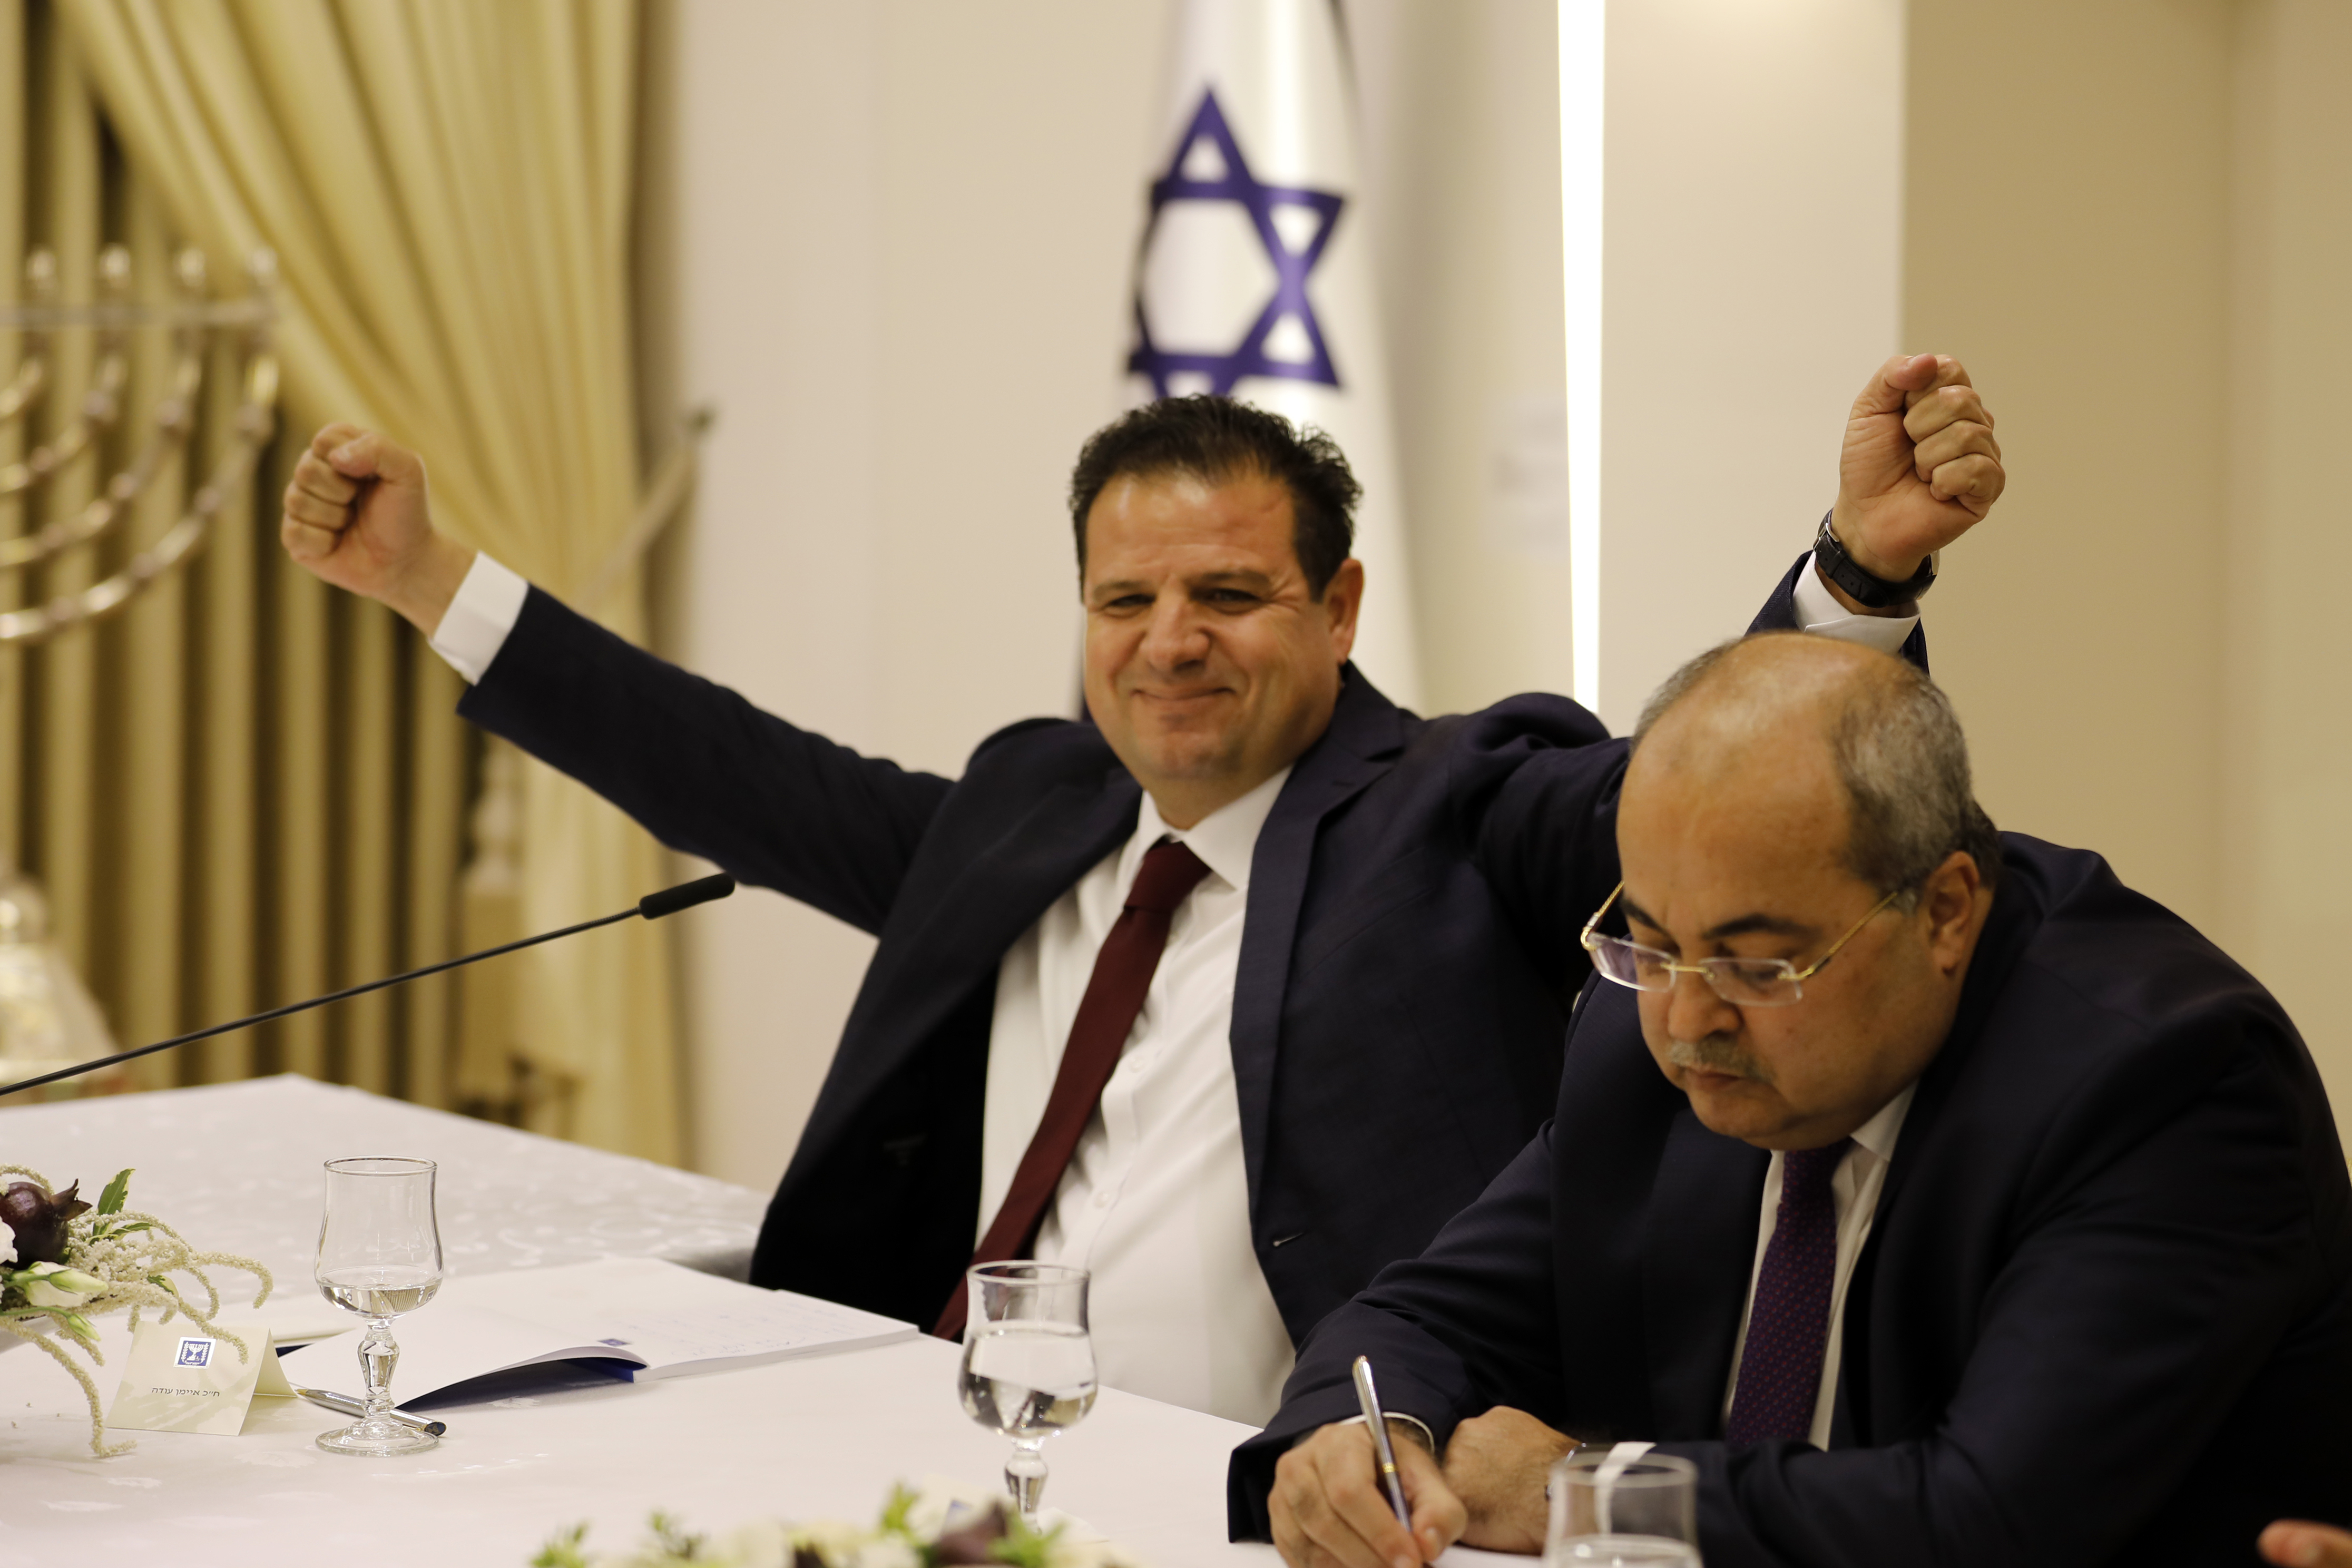 The Latest: Arab lawmakers in Israel endorse Gantz for PM